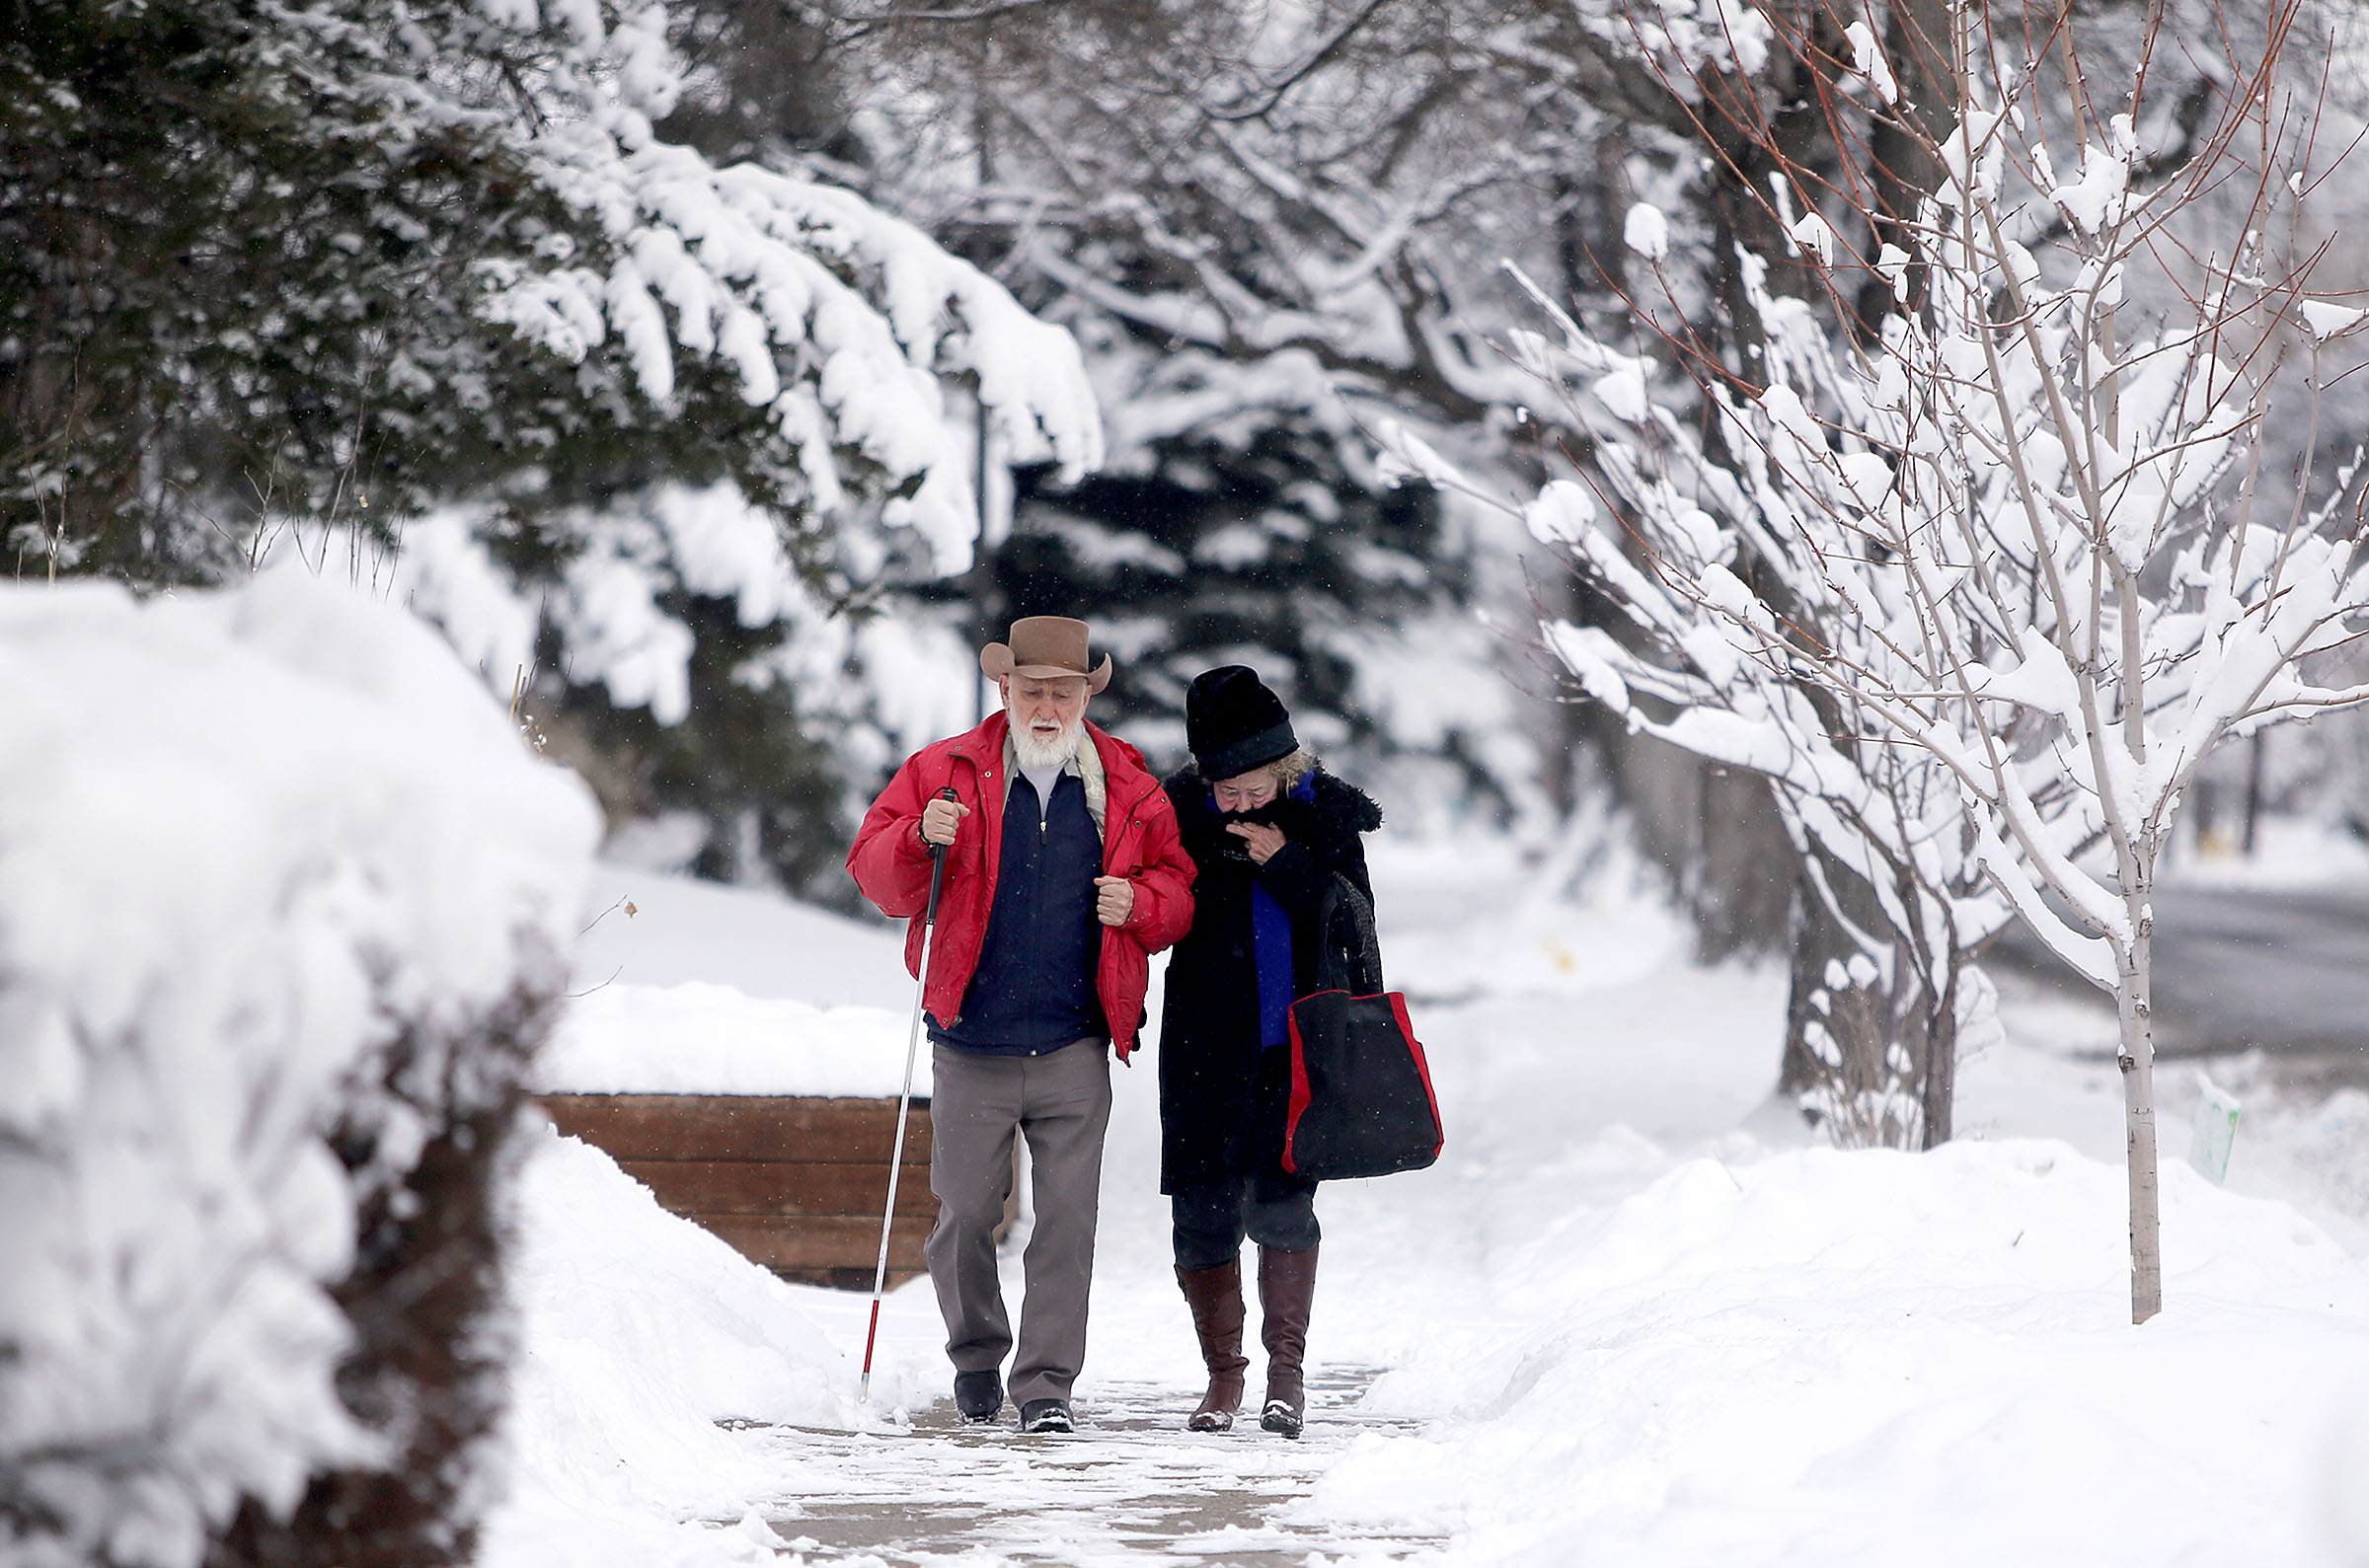 lots of snow for skiing, but utah snowpacks still depleted following